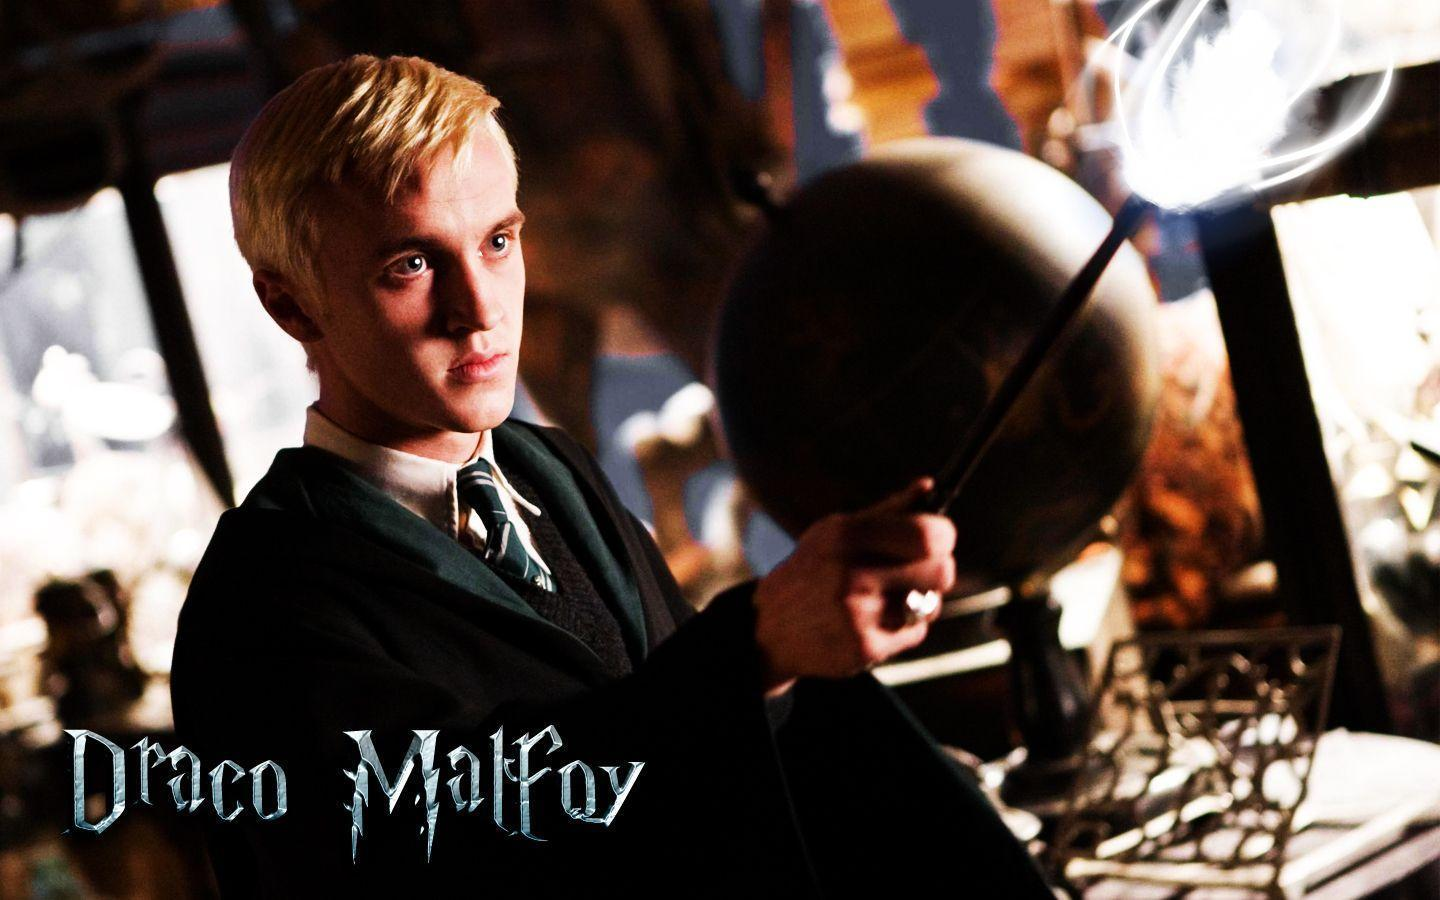 Download the Draco Malfoy Wallpaper, Draco Malfoy iPhone Wallpapers